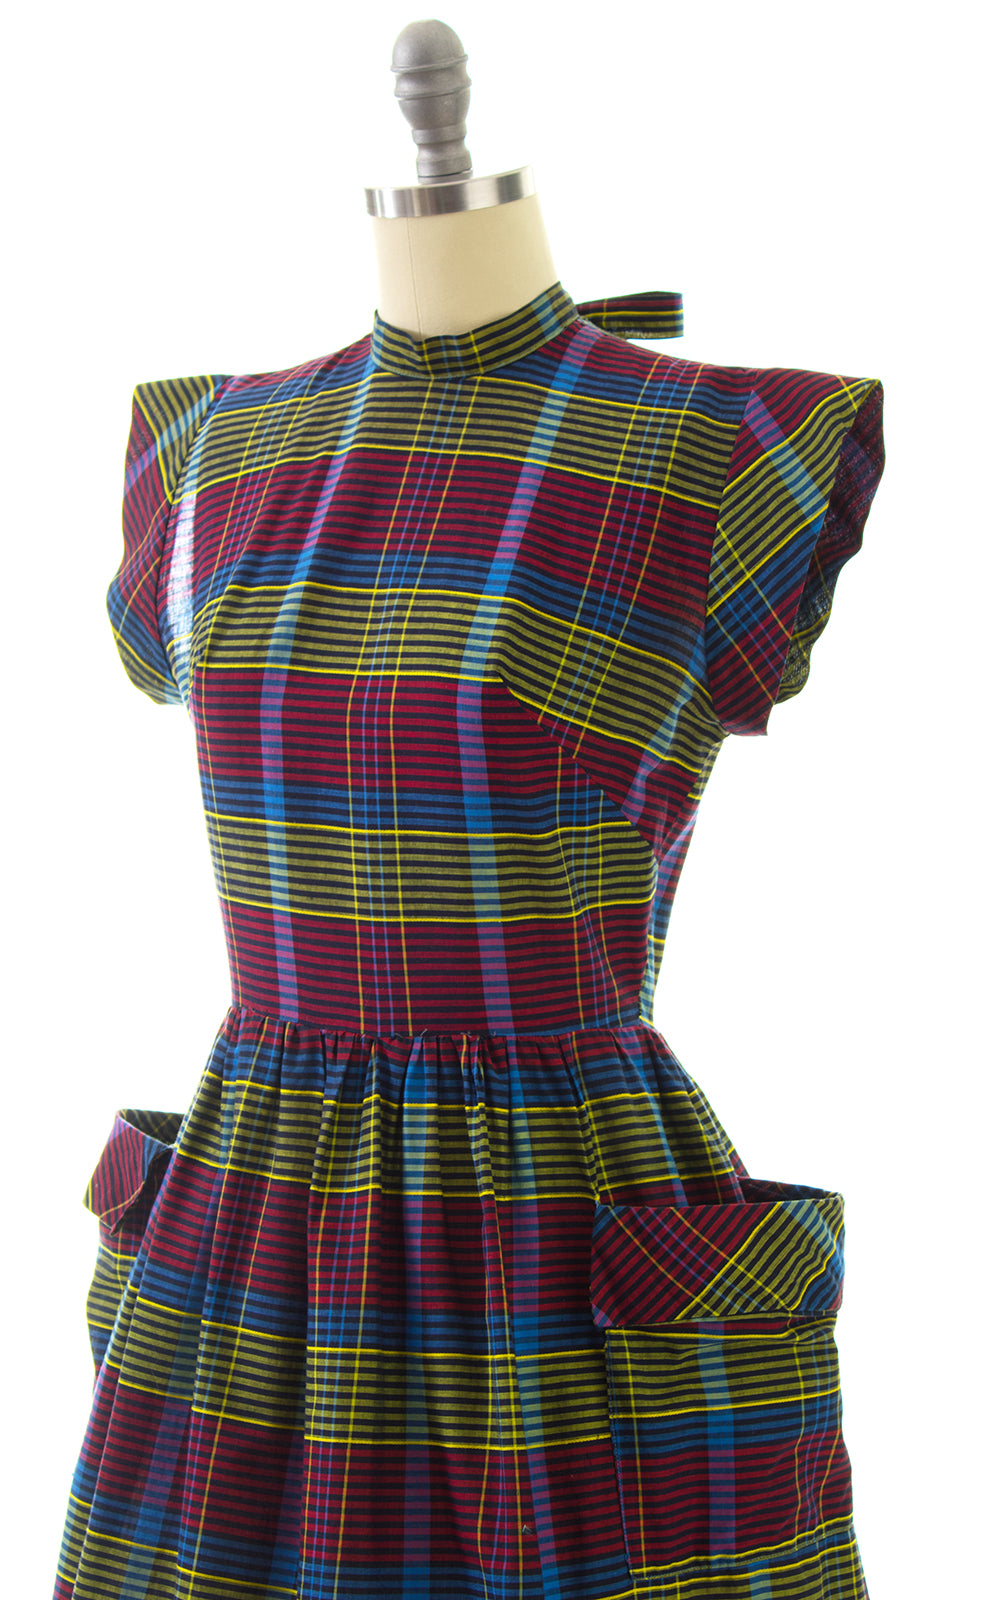 1950s Plaid Cotton Dress with Pockets